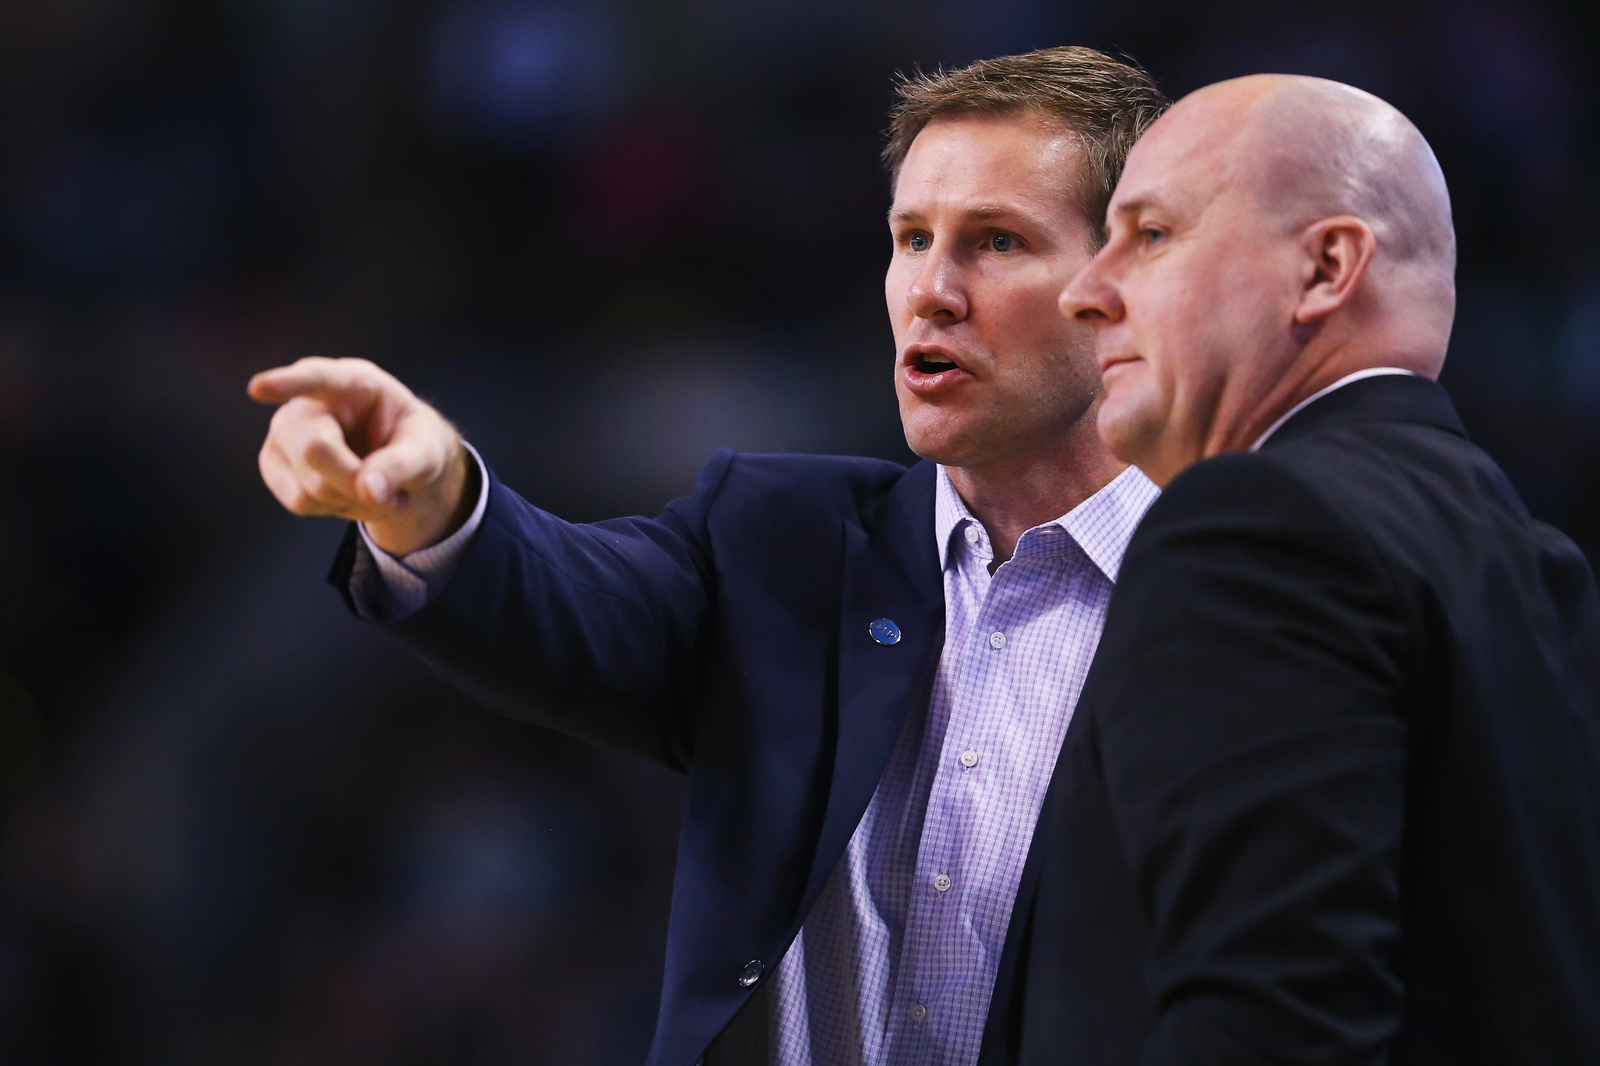 Fred Hoiberg head coach of the Chicago Bulls talks with assistant coach Jim Boylen during the second half at TD Garden on December 9, 2015 in Boston, Massachusetts. The Celtics defeat the Bulls 105-100.